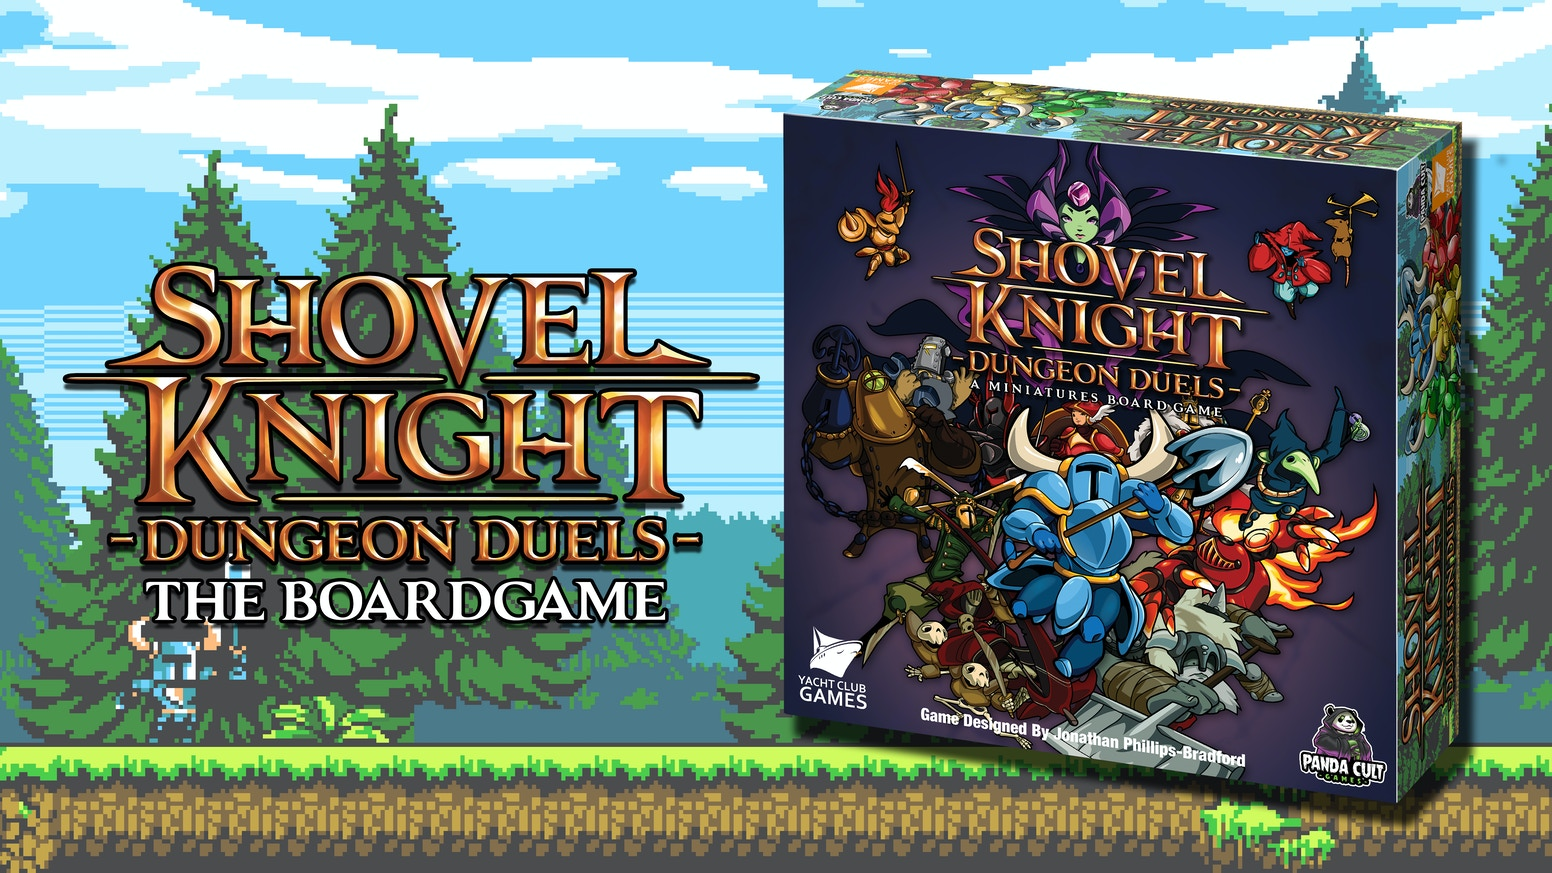 Shovel Knight: Dungeon Duels is a 1 to 4 player competitive side scrolling dungeon crawl based off of the Shovel Knight video game!Late Pledge for it now:https://pandacultgames.pledgemanager.com/projects/shovel-knight-dungeon-duels/participate/